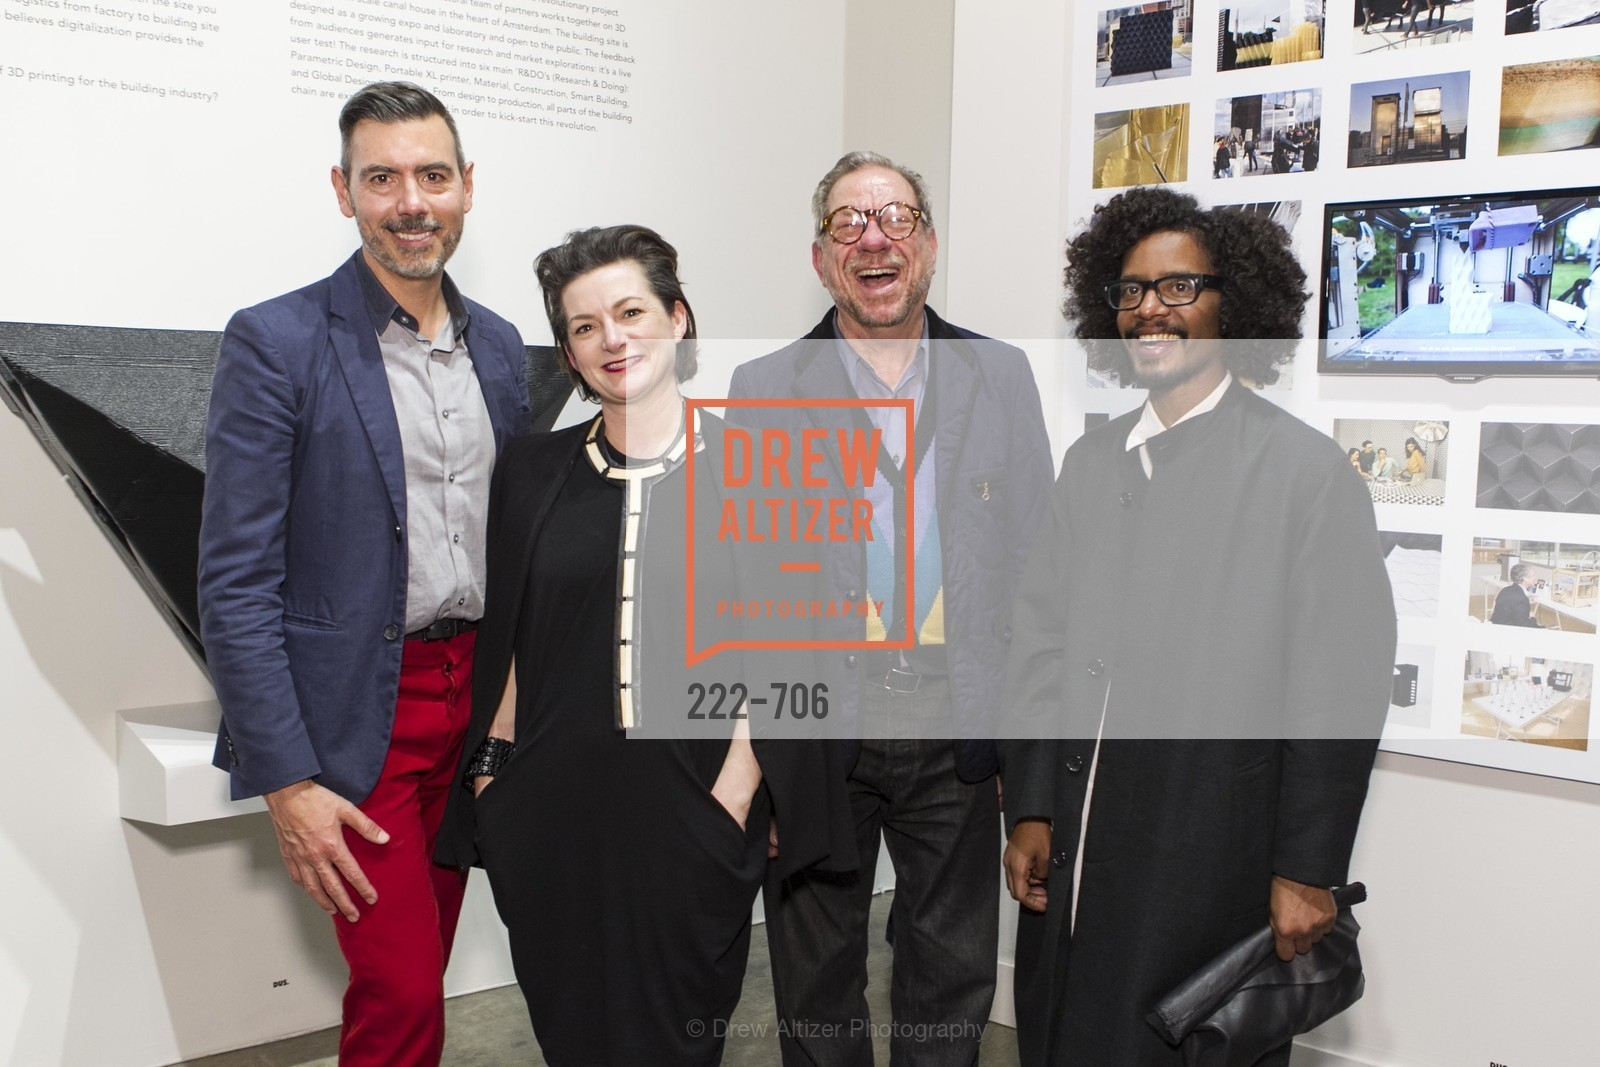 John Macy, Alisa Carroll, Gary Hutton, Yani Alexi Dominguez, Exhibit Opening at the MUSEUM OF CRAFT AND DESIGN - Hands Off: New Dutch Design at the Confluence of Technology & Craft, US, May 7th, 2015,Drew Altizer, Drew Altizer Photography, full-service agency, private events, San Francisco photographer, photographer california